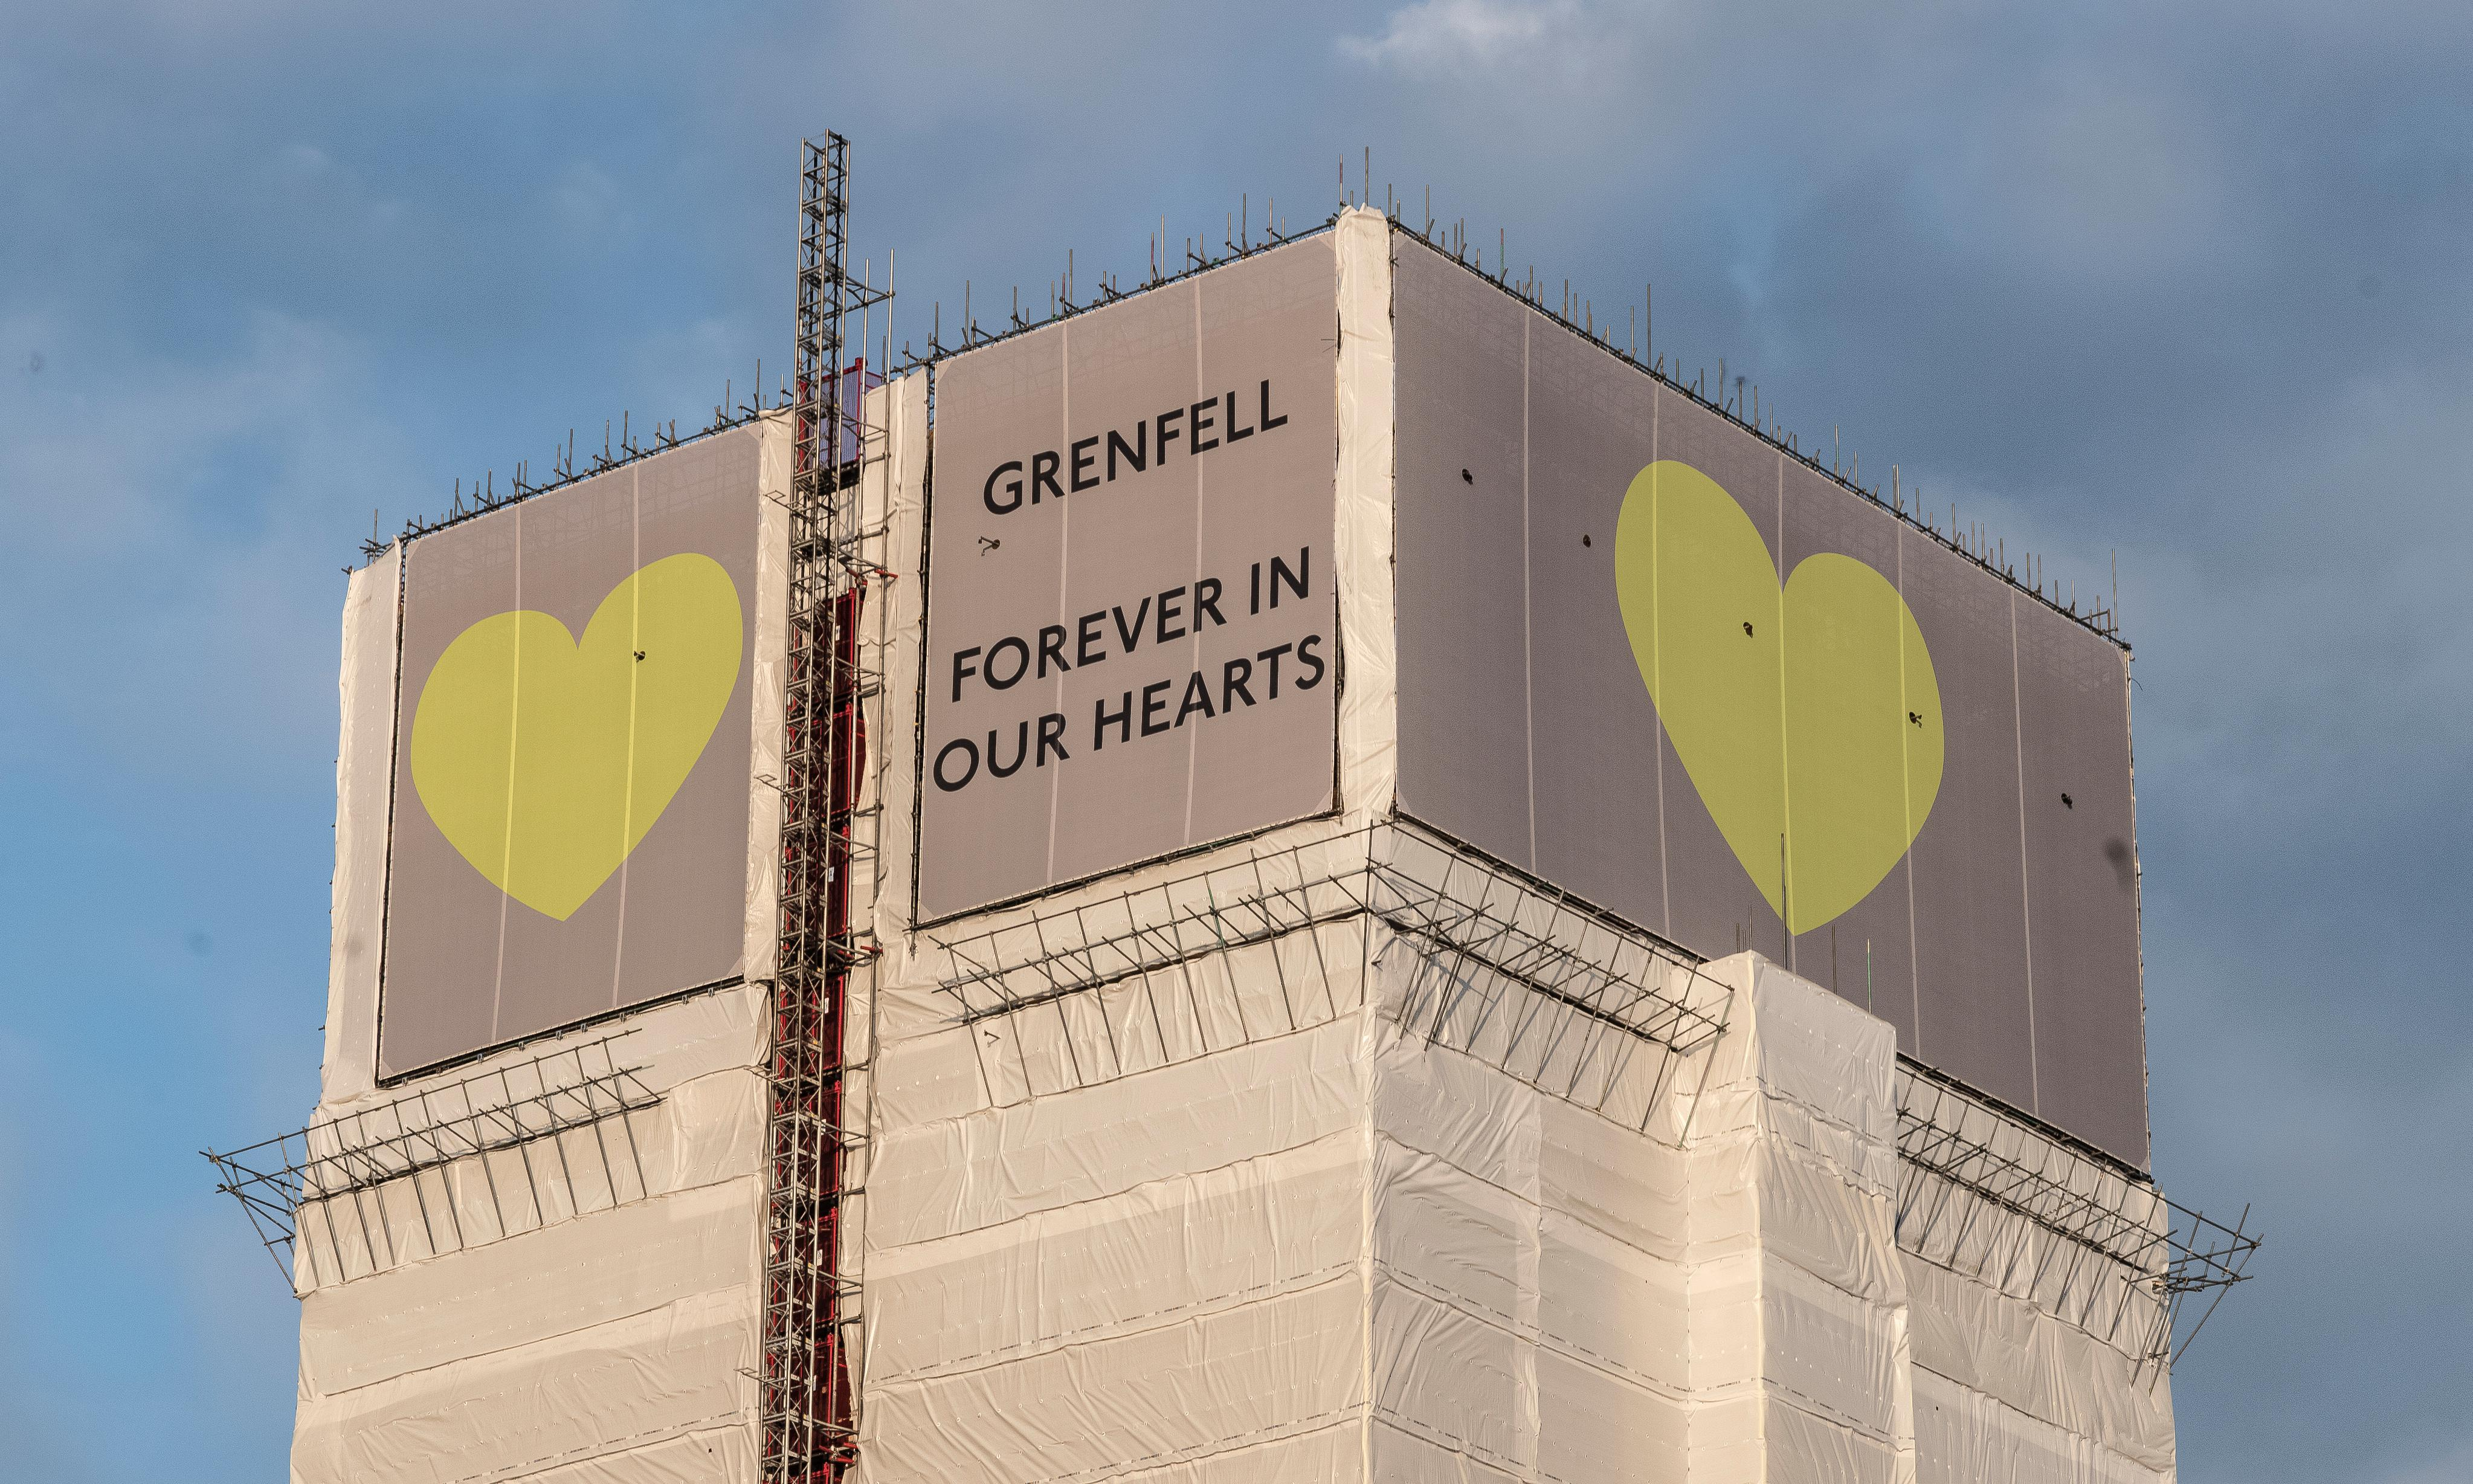 Man charged over Grenfell effigy fire video